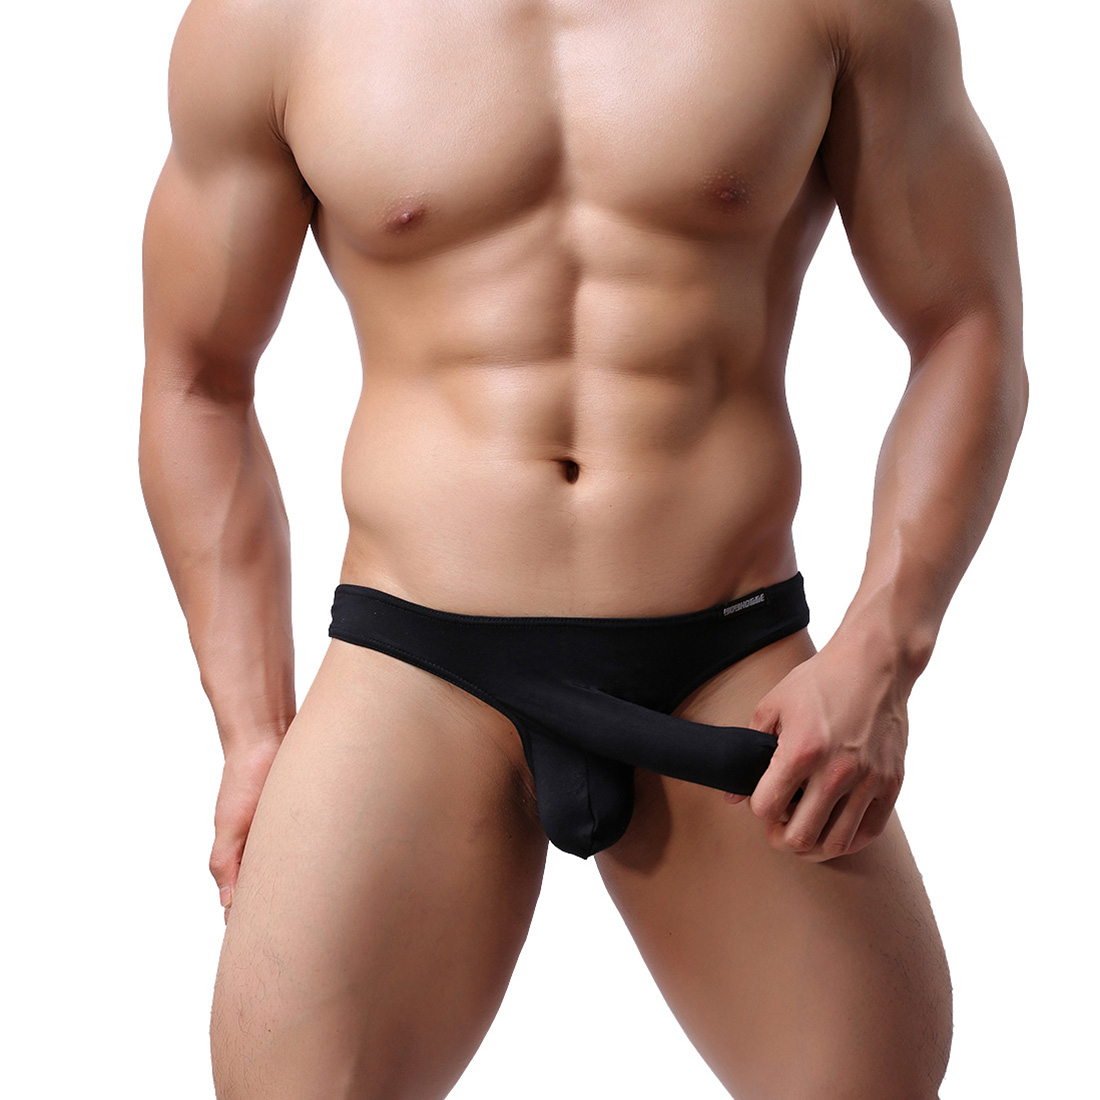 Men's Sexy Lingerie Underwear Modal Triangle Pants Shorts with Penis Sheath JET Bikini WH9 Black XL